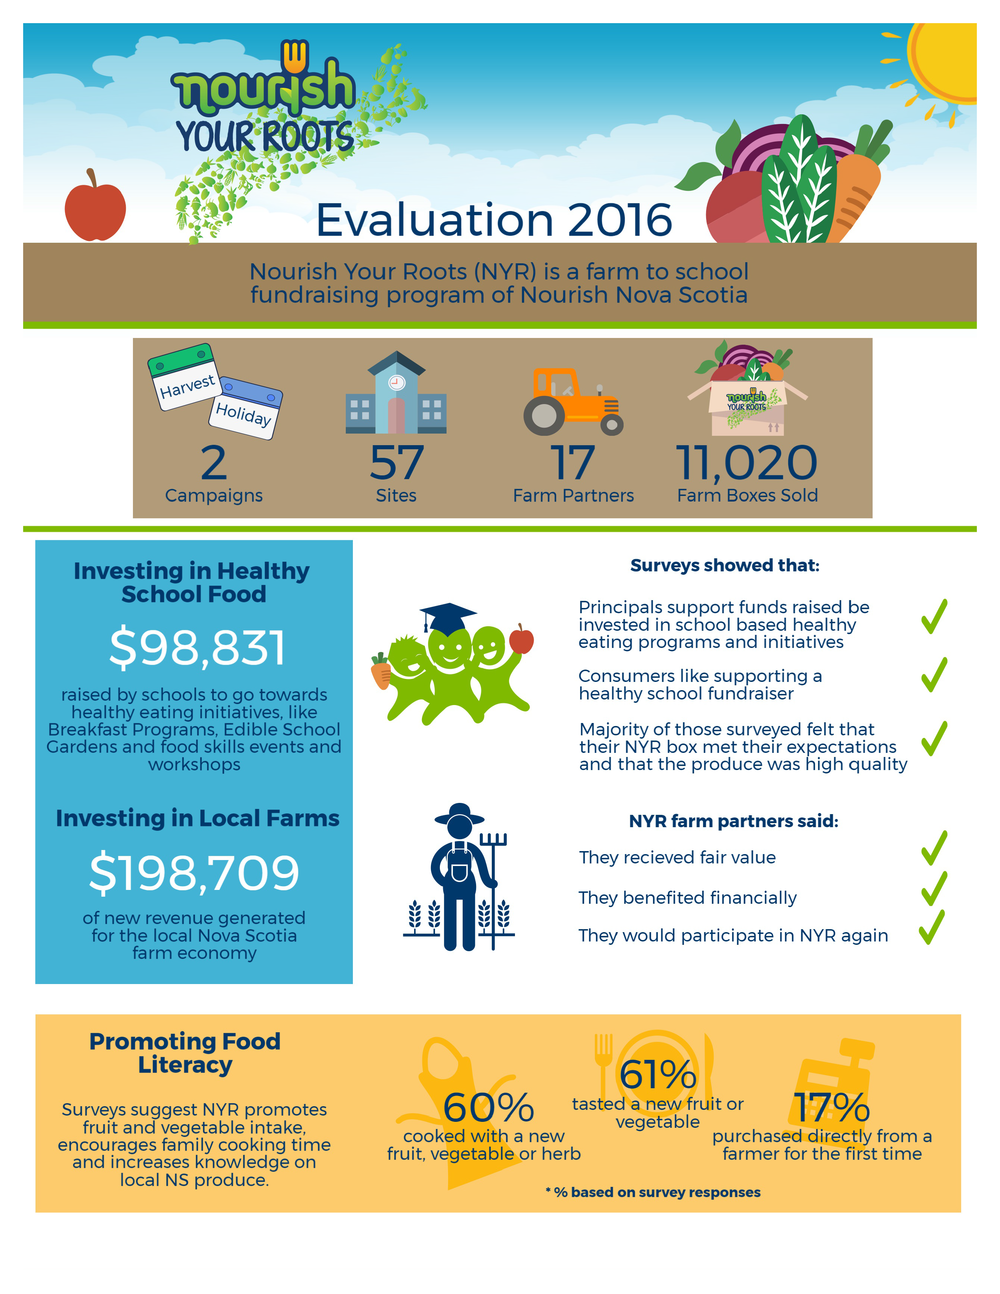 2016 Nourish Your Roots Evaluation - Infographic